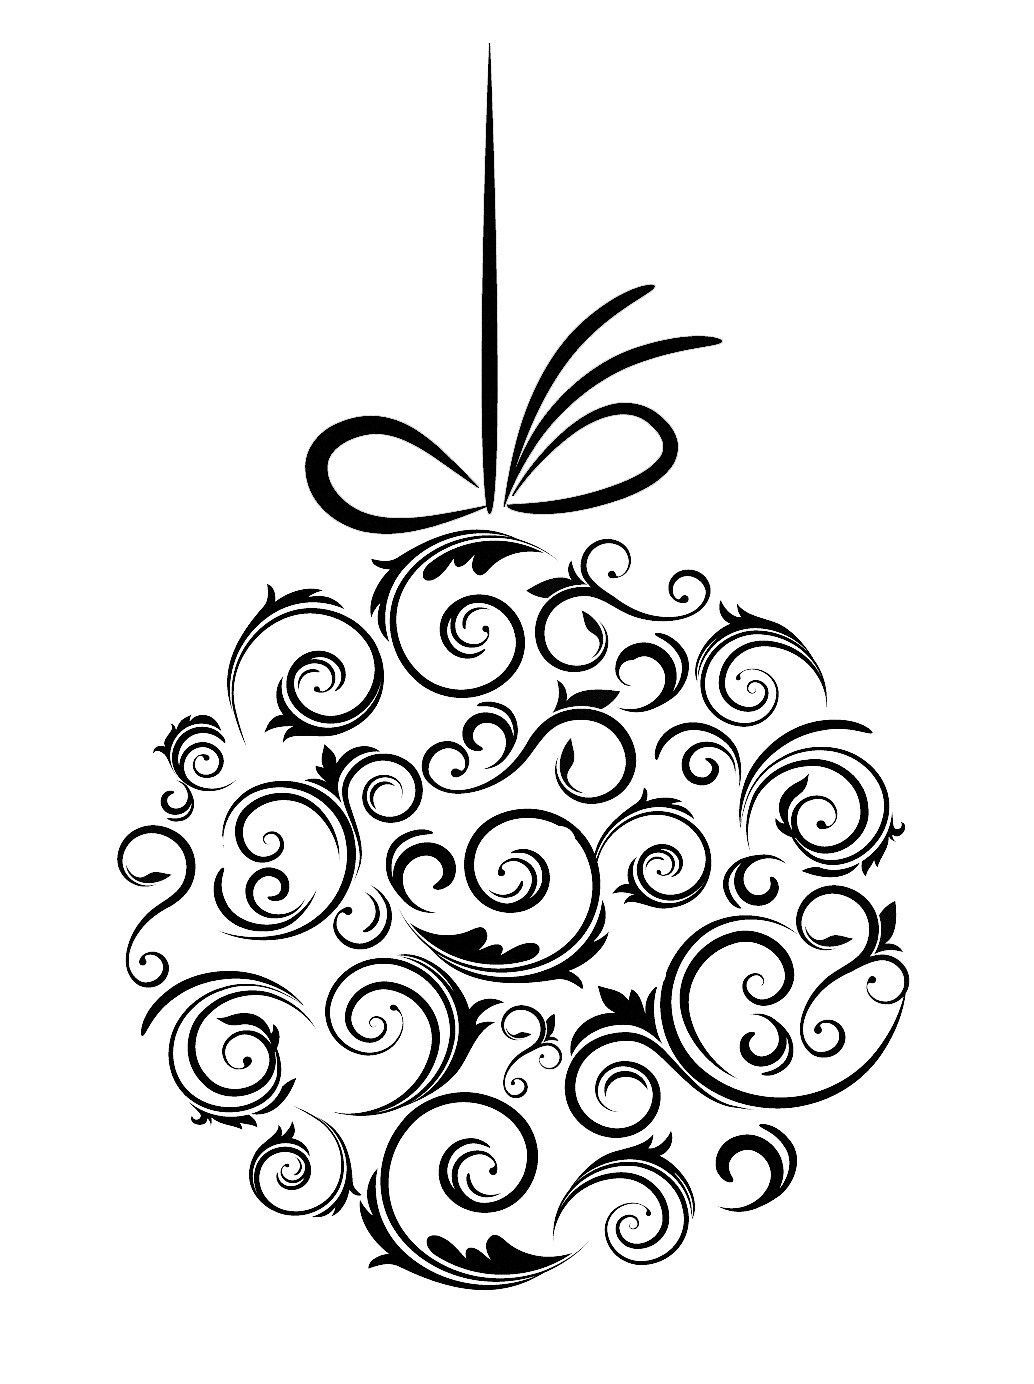 23+ Christmas presents clipart black and white info